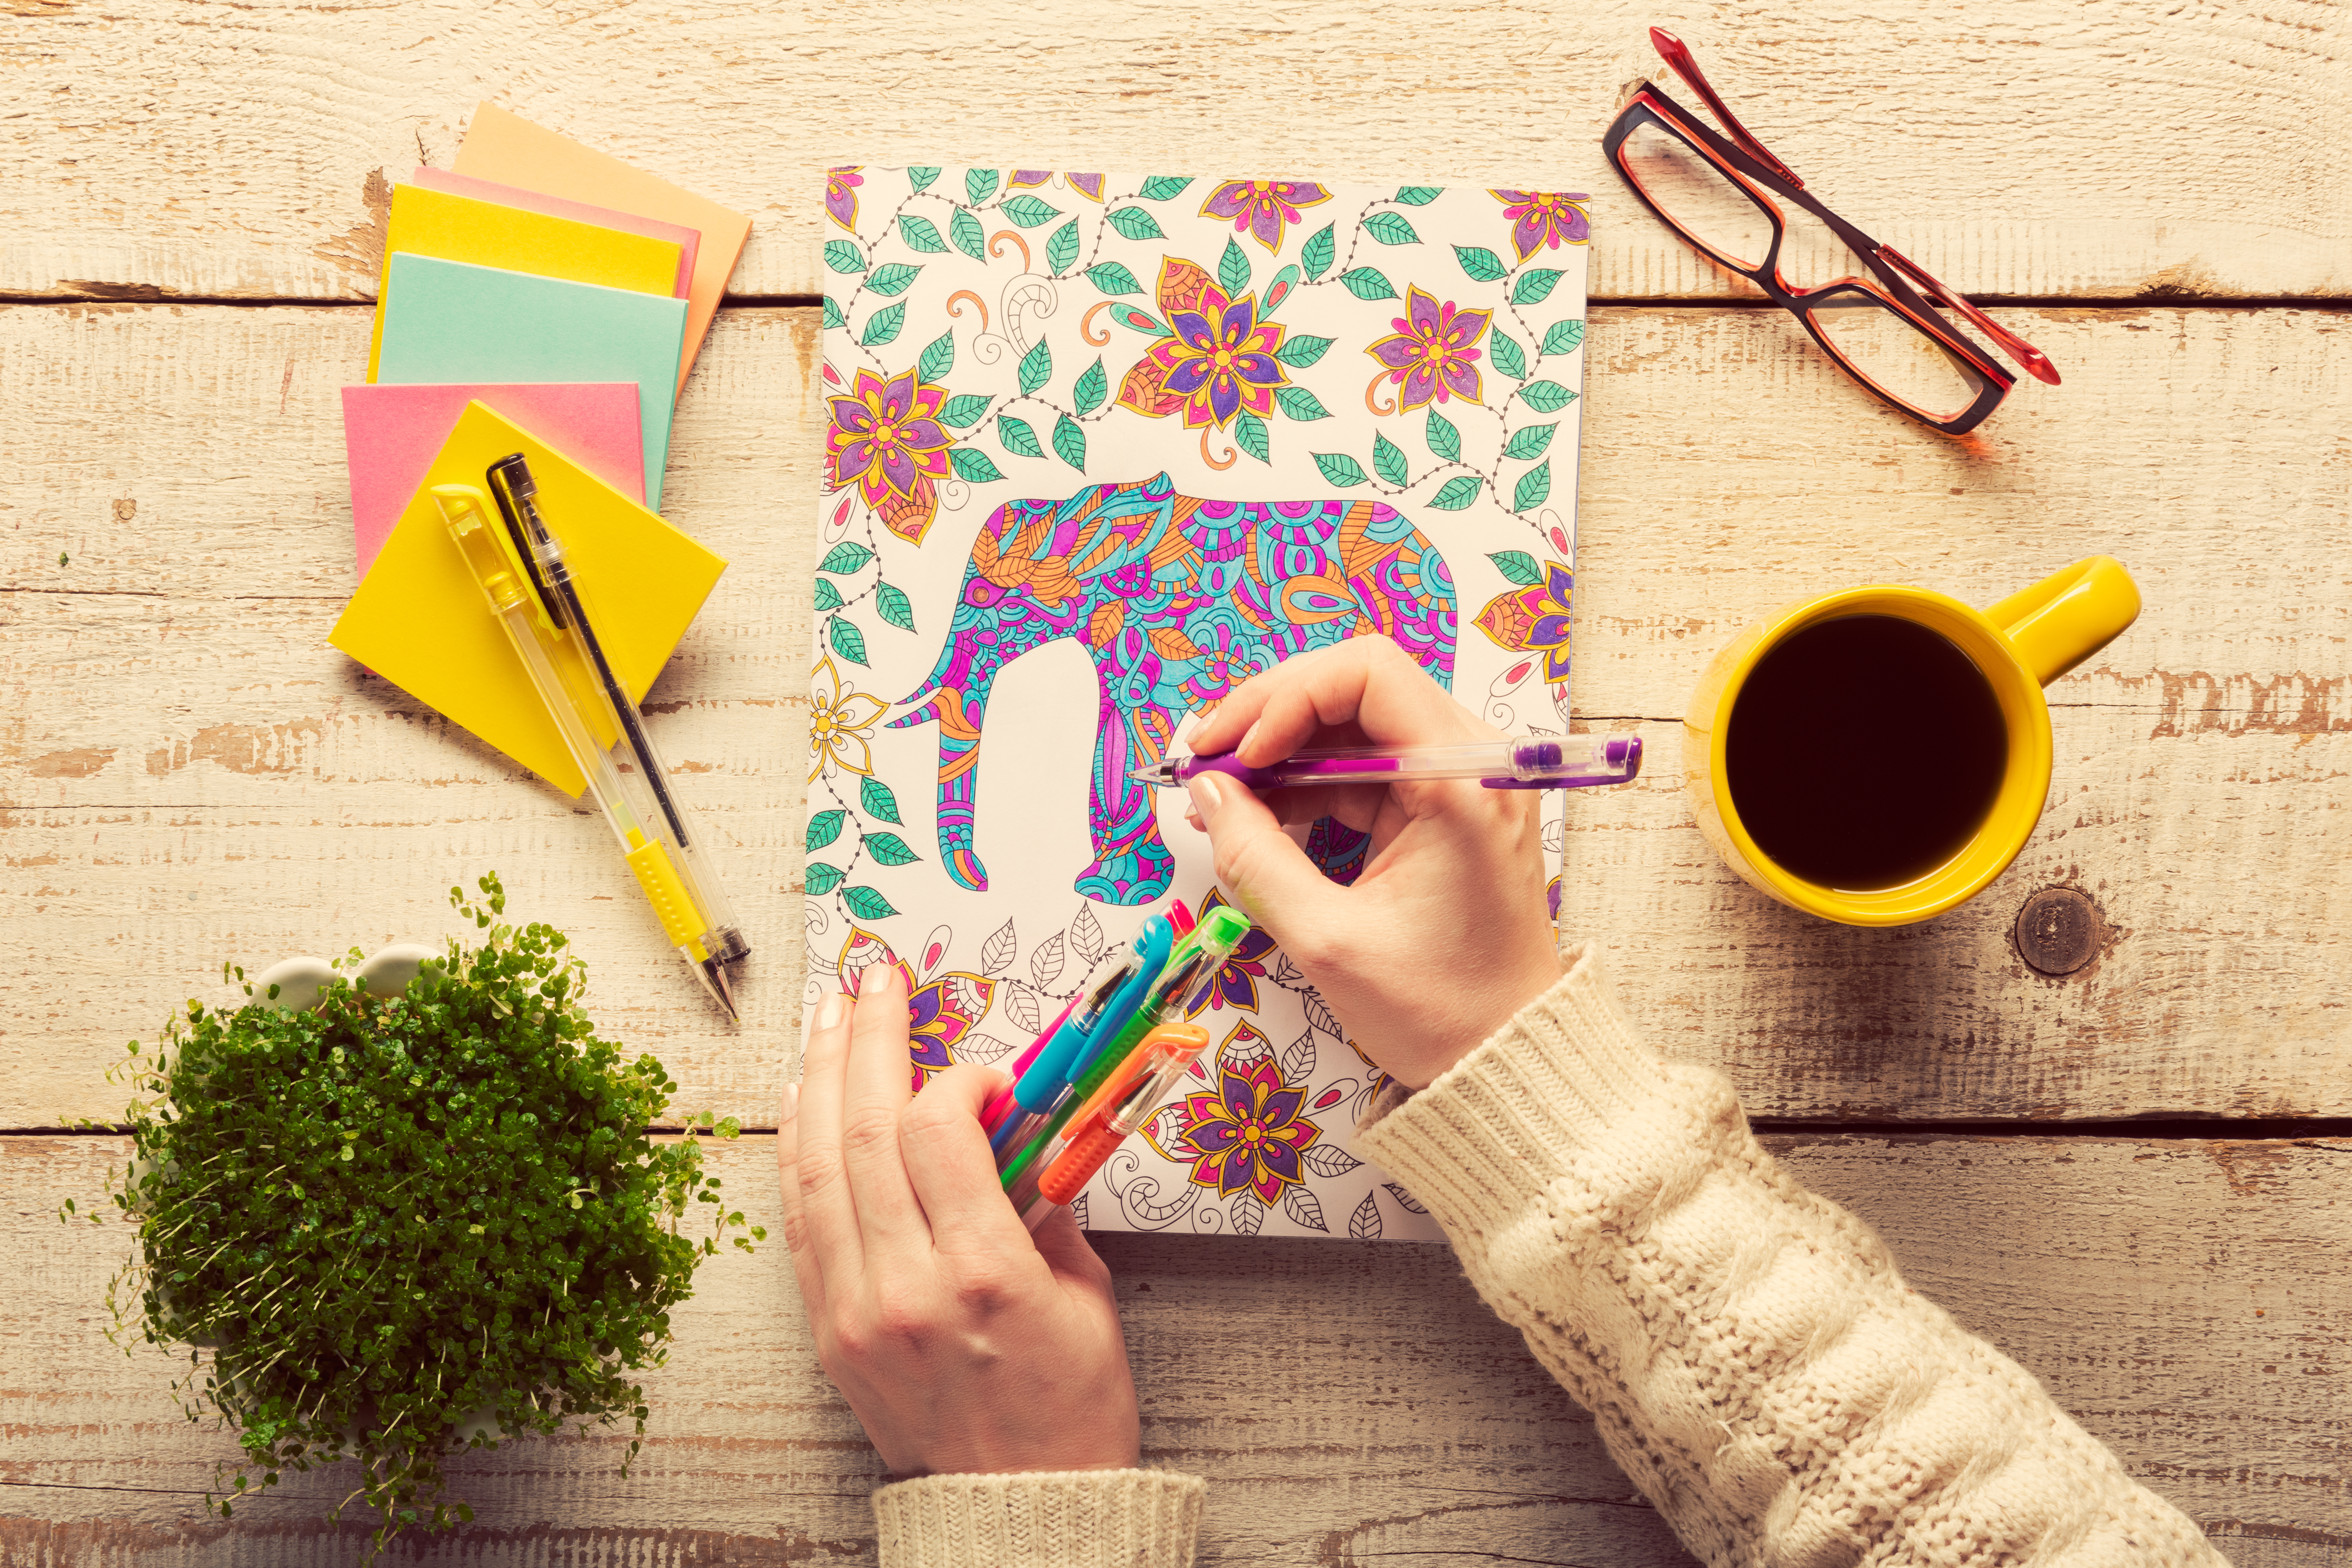 15 Adult Coloring Books To Help Manage Your Stress In A Creative Way